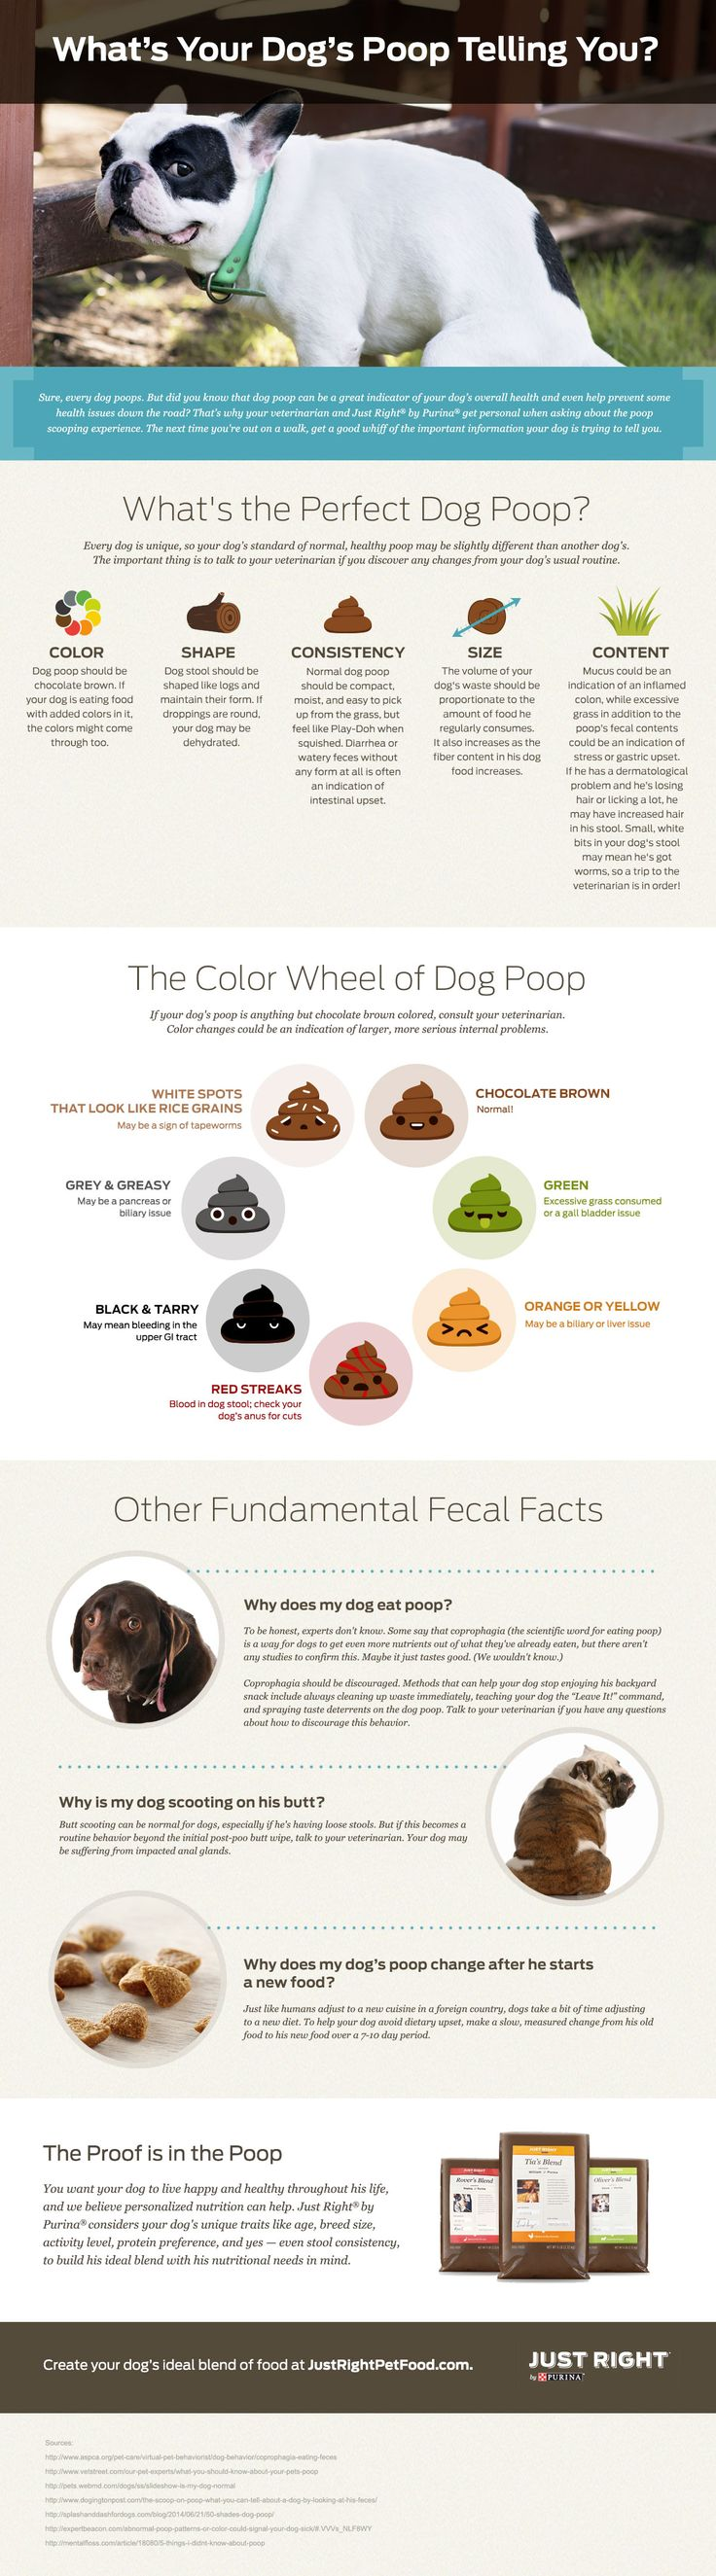 Dog Poop & What It Means | Just Right by Purina ...